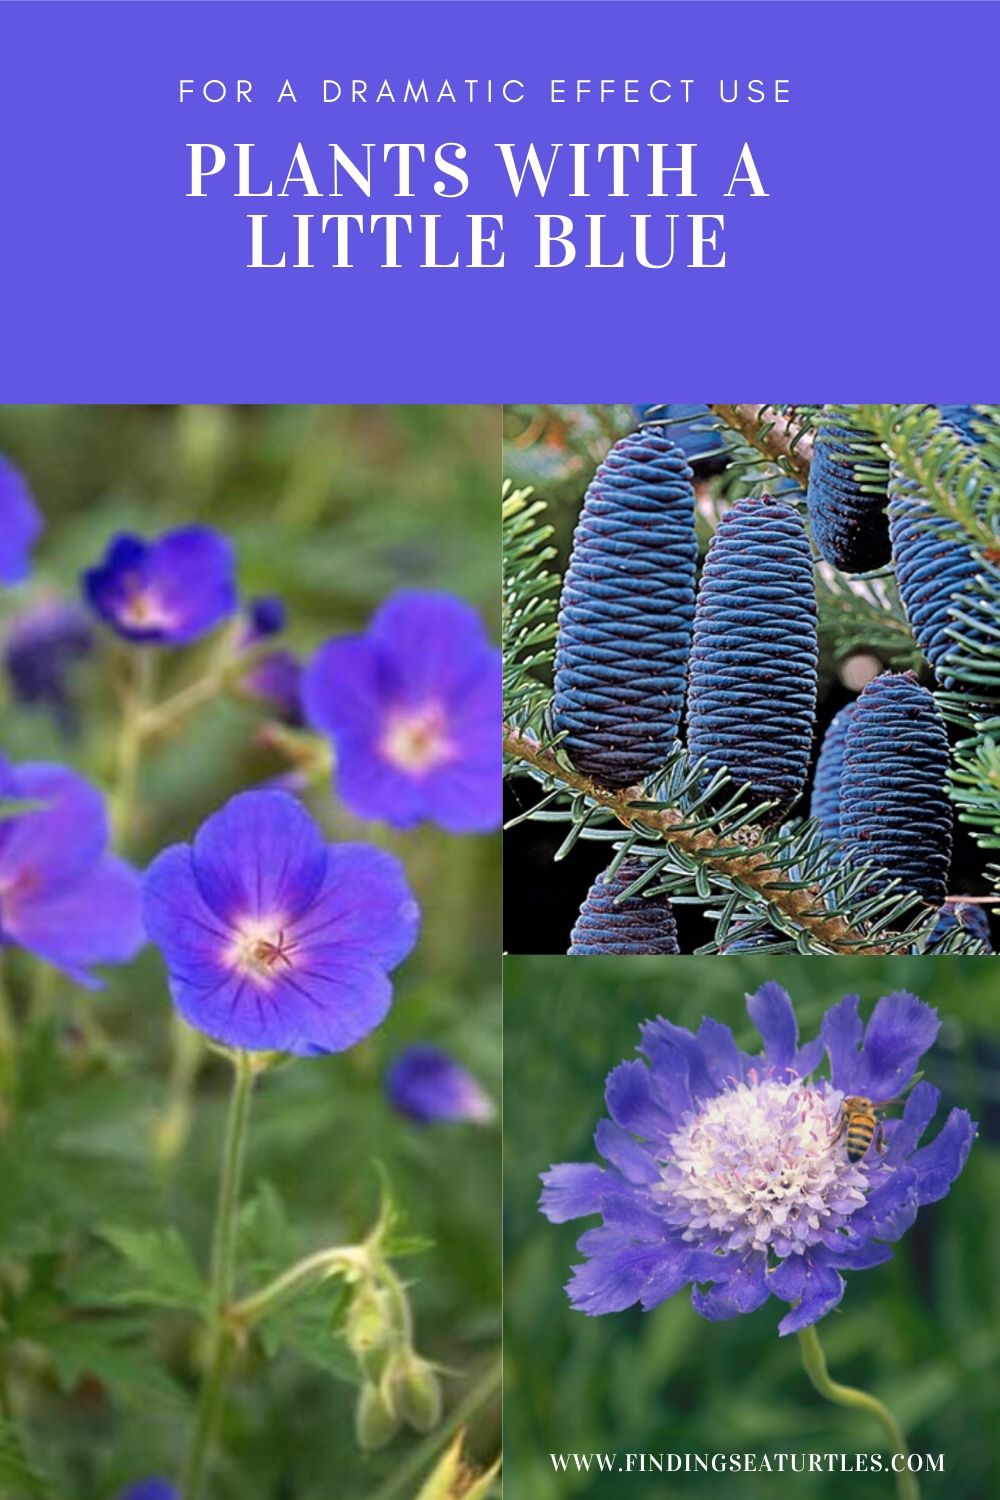 For a Dramatic Effect Use Plants with a Little Blue #Garden #Plants #Gardening #PlantswithBlueFlowers #PlantswithBlueBlooms #BluePlants #DramaticFoliagePlants